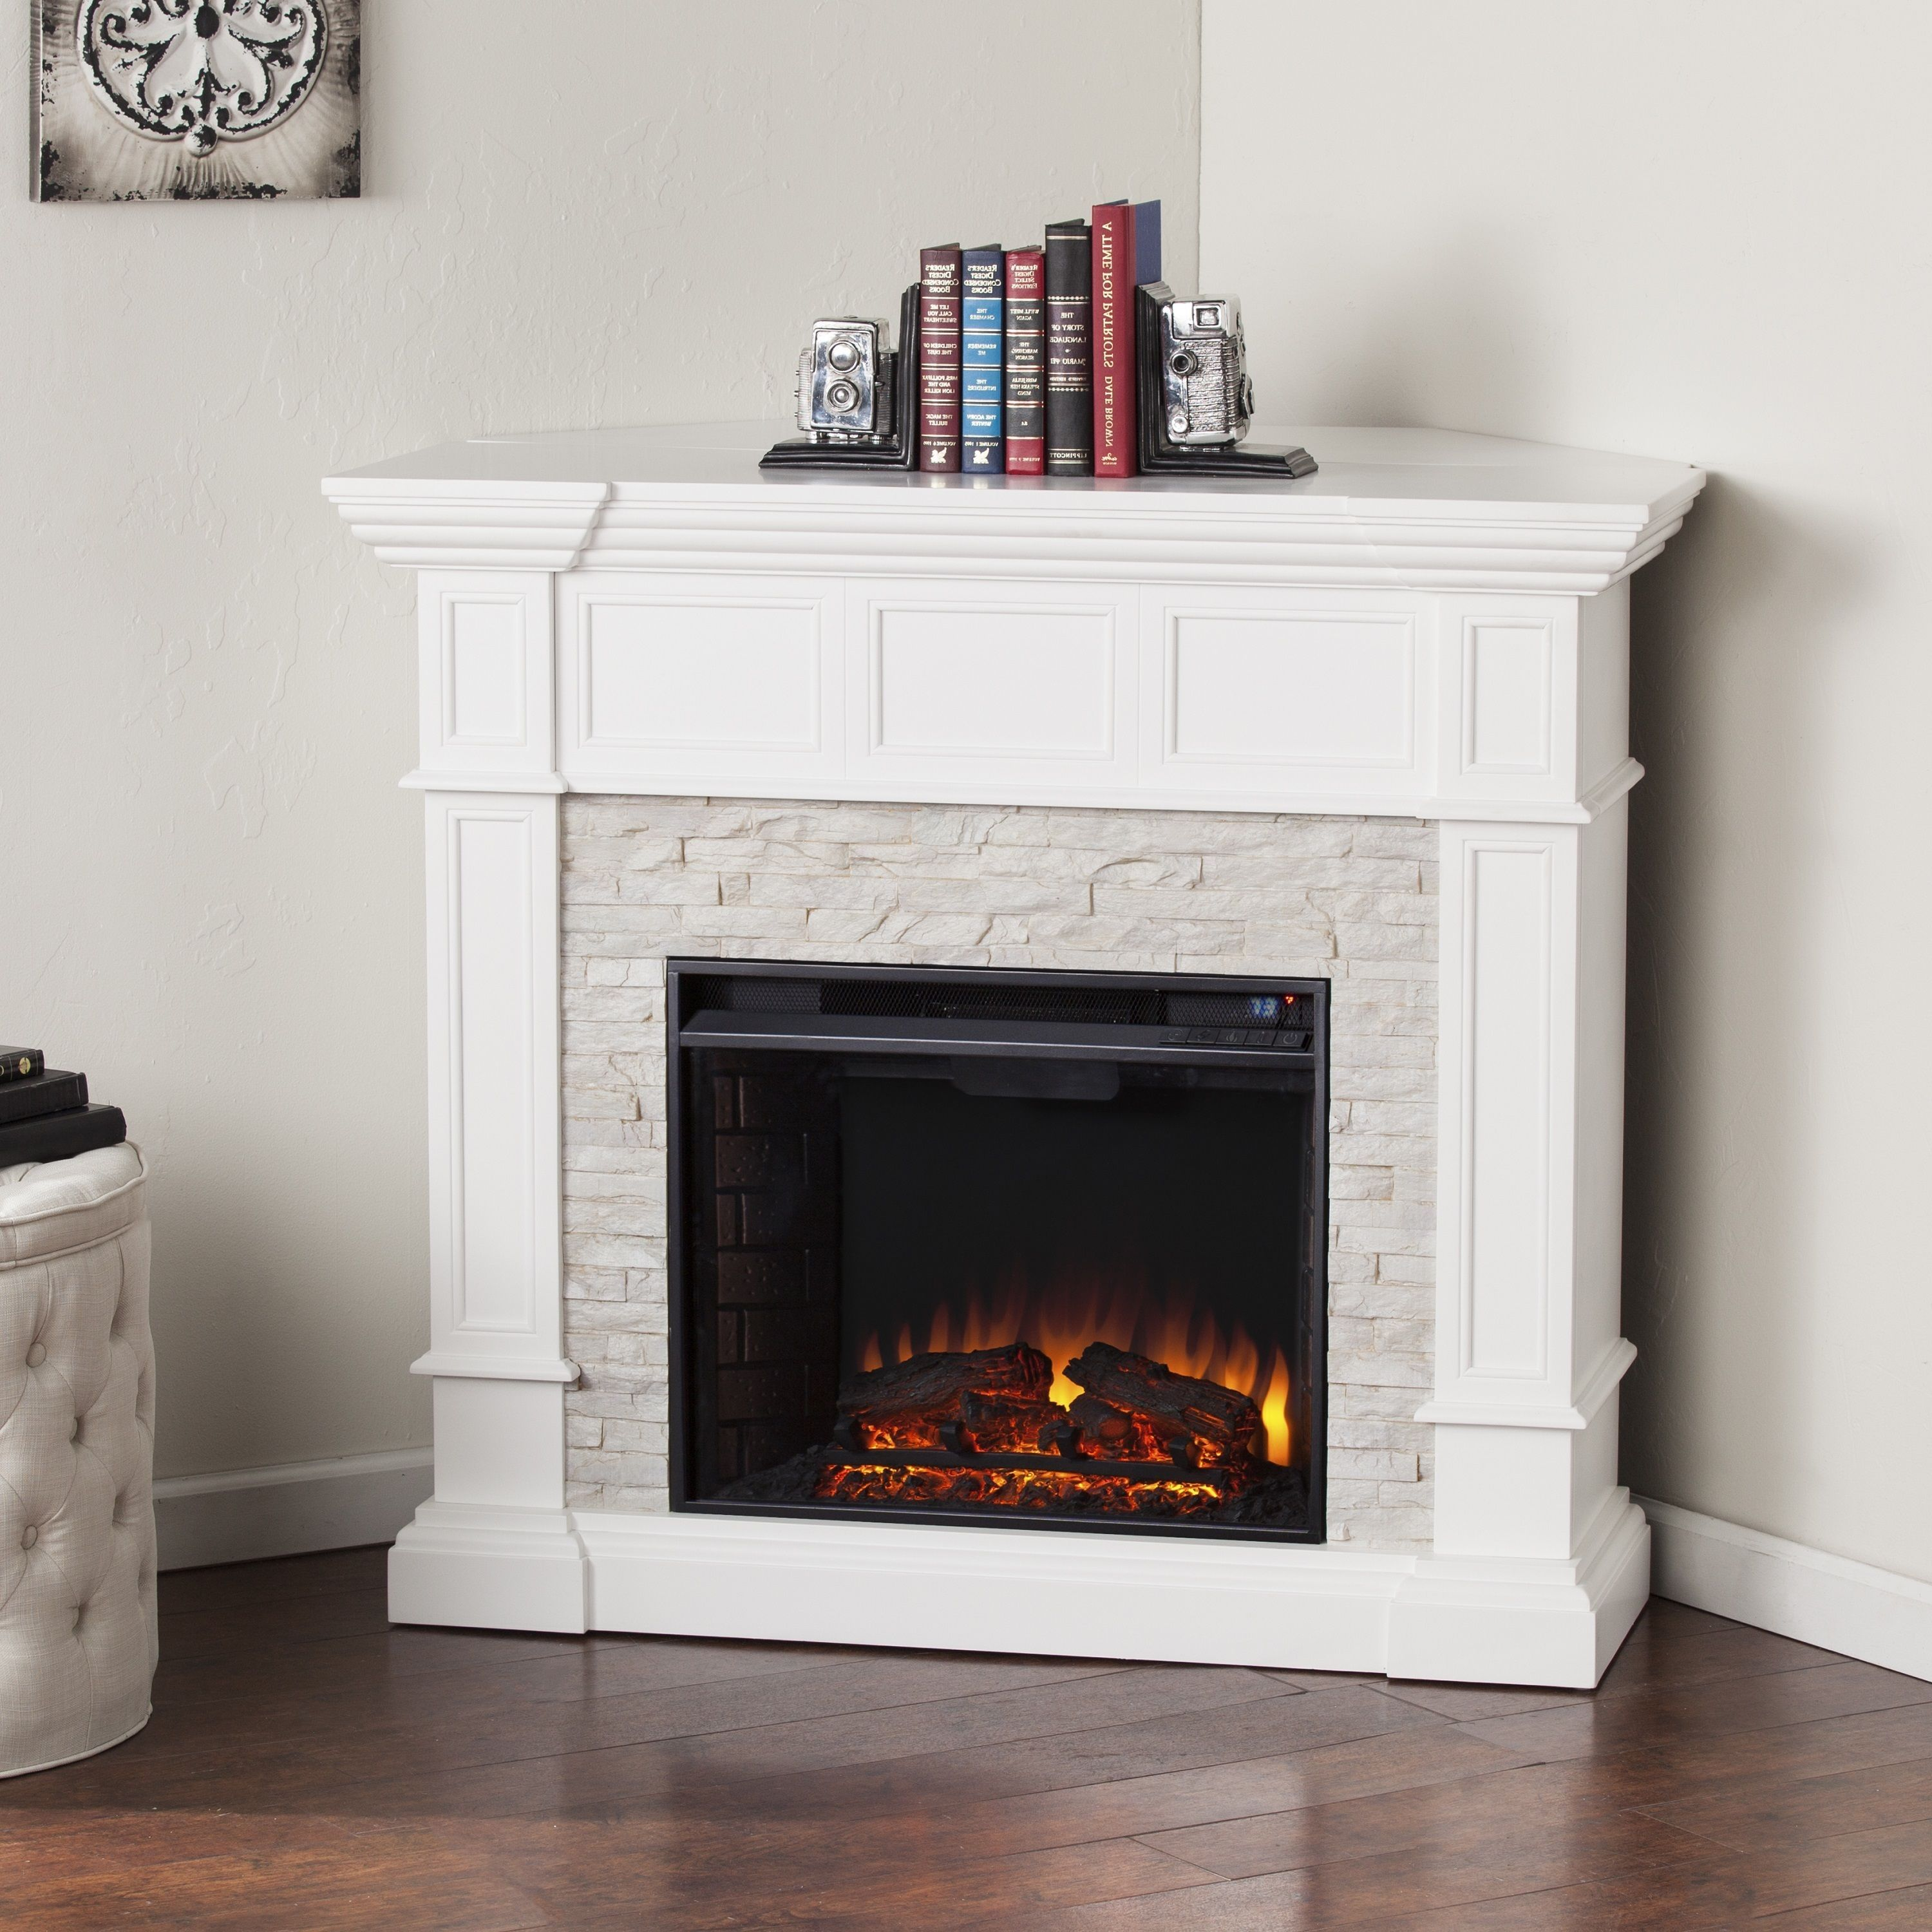 Corner Fireplace Elegant 33 Modern and Traditional Corner Fireplace Ideas Remodel